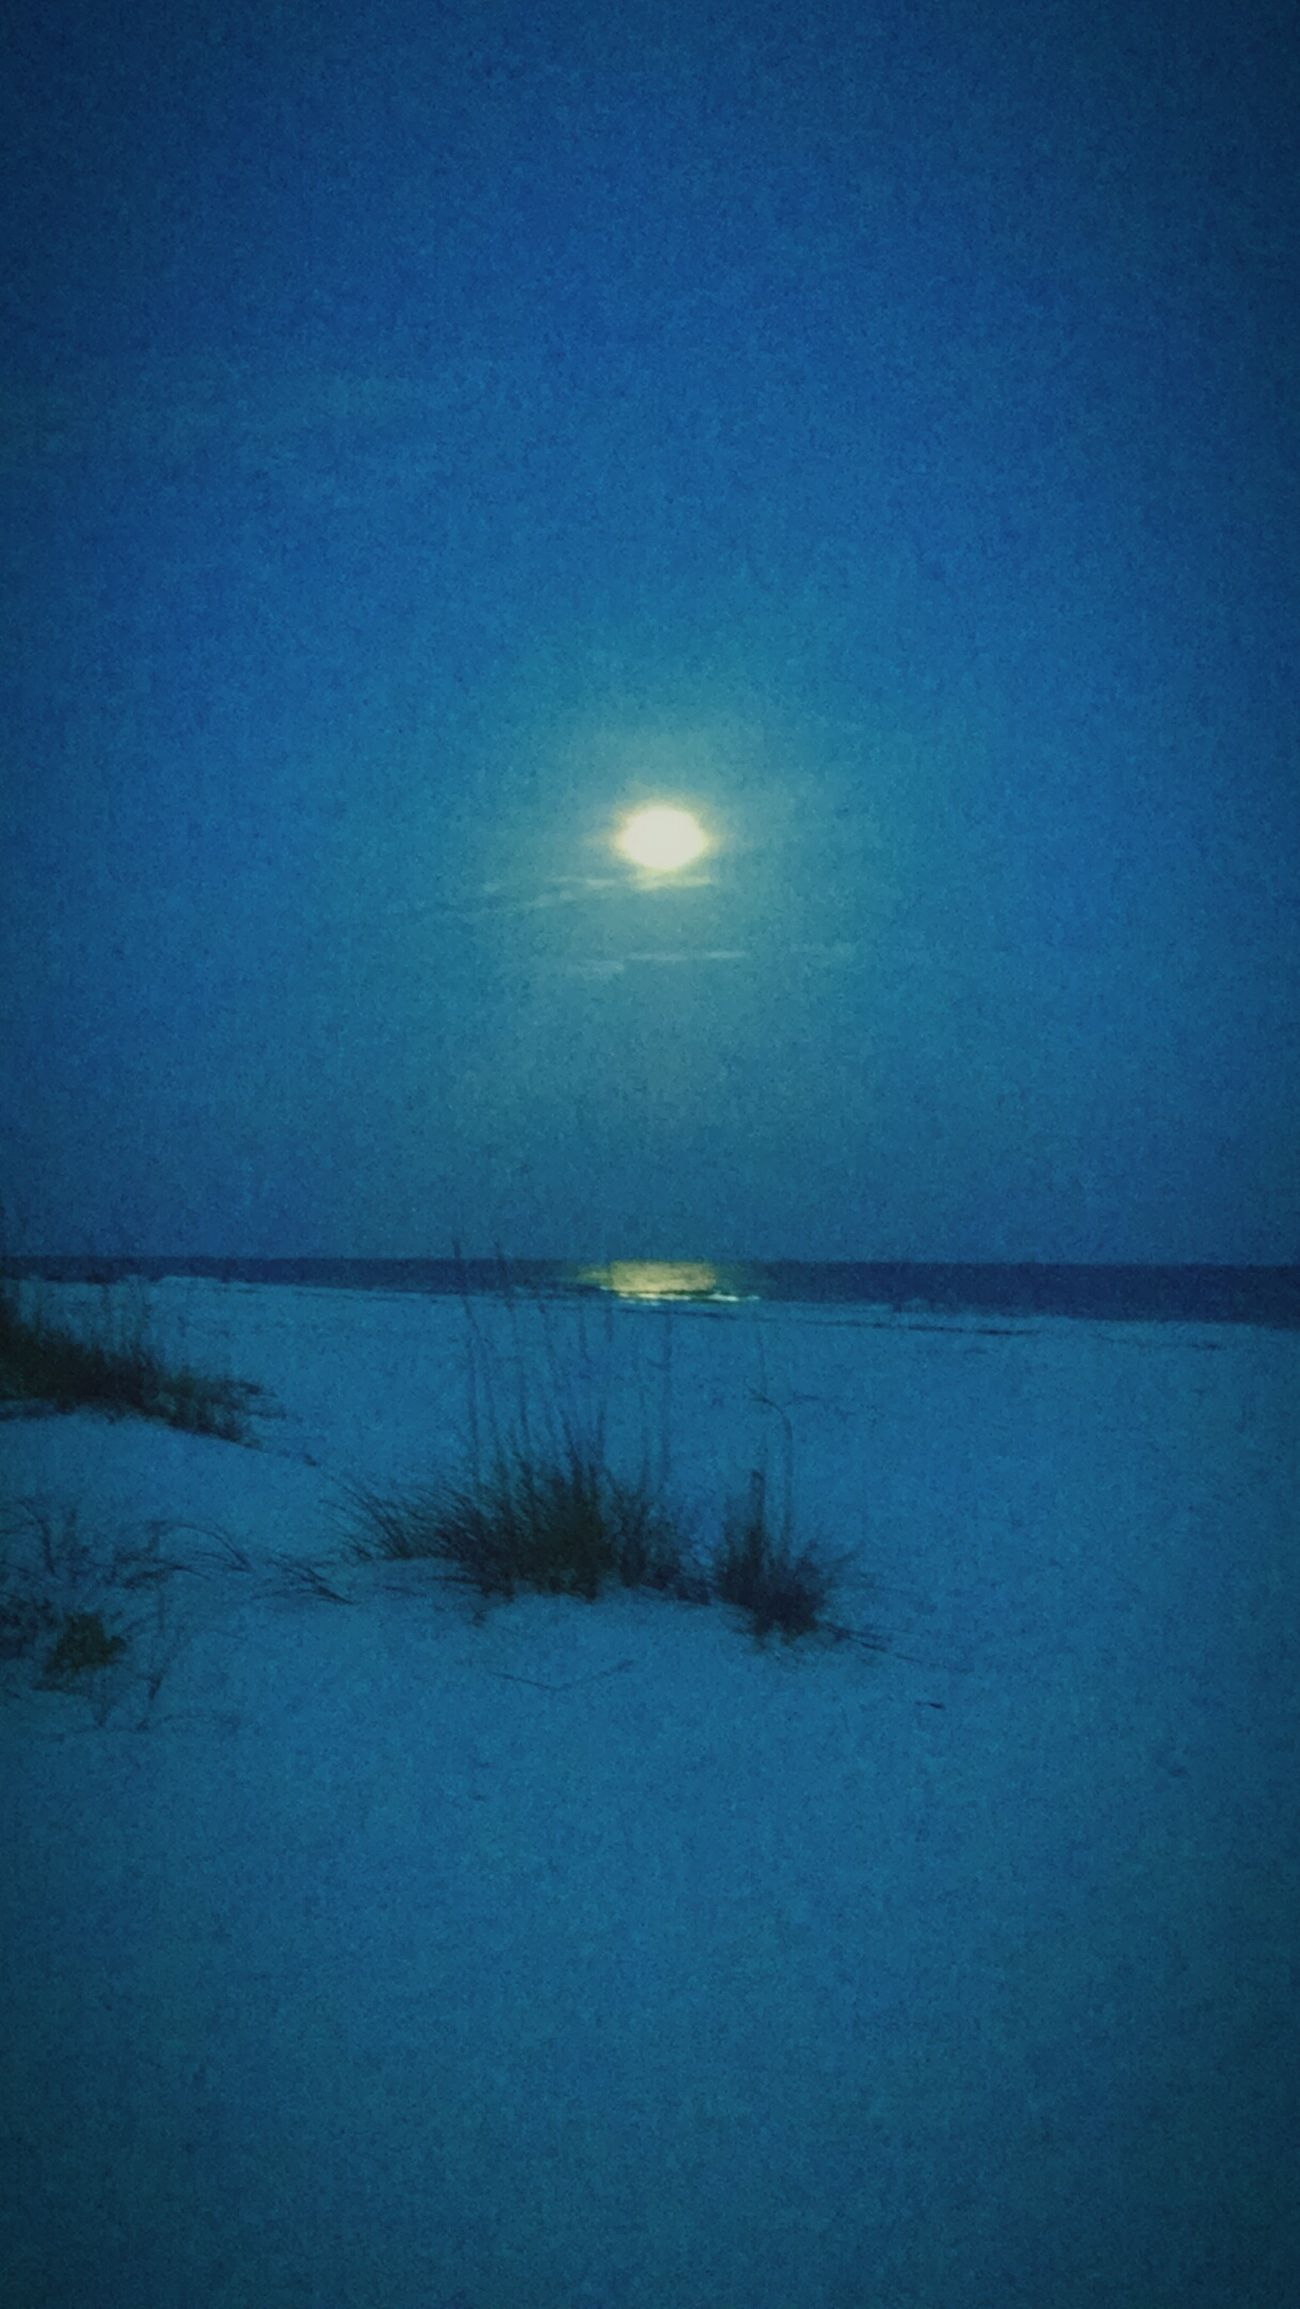 Calmness Blue Bluenight Sand Moonlight Full Moon Moon Beachatnight Exploring Nature Scenery Outdoors Beautiful Beautiful Nature Pensacola Beach Beach Water🐚🌌🌊🐬🐠